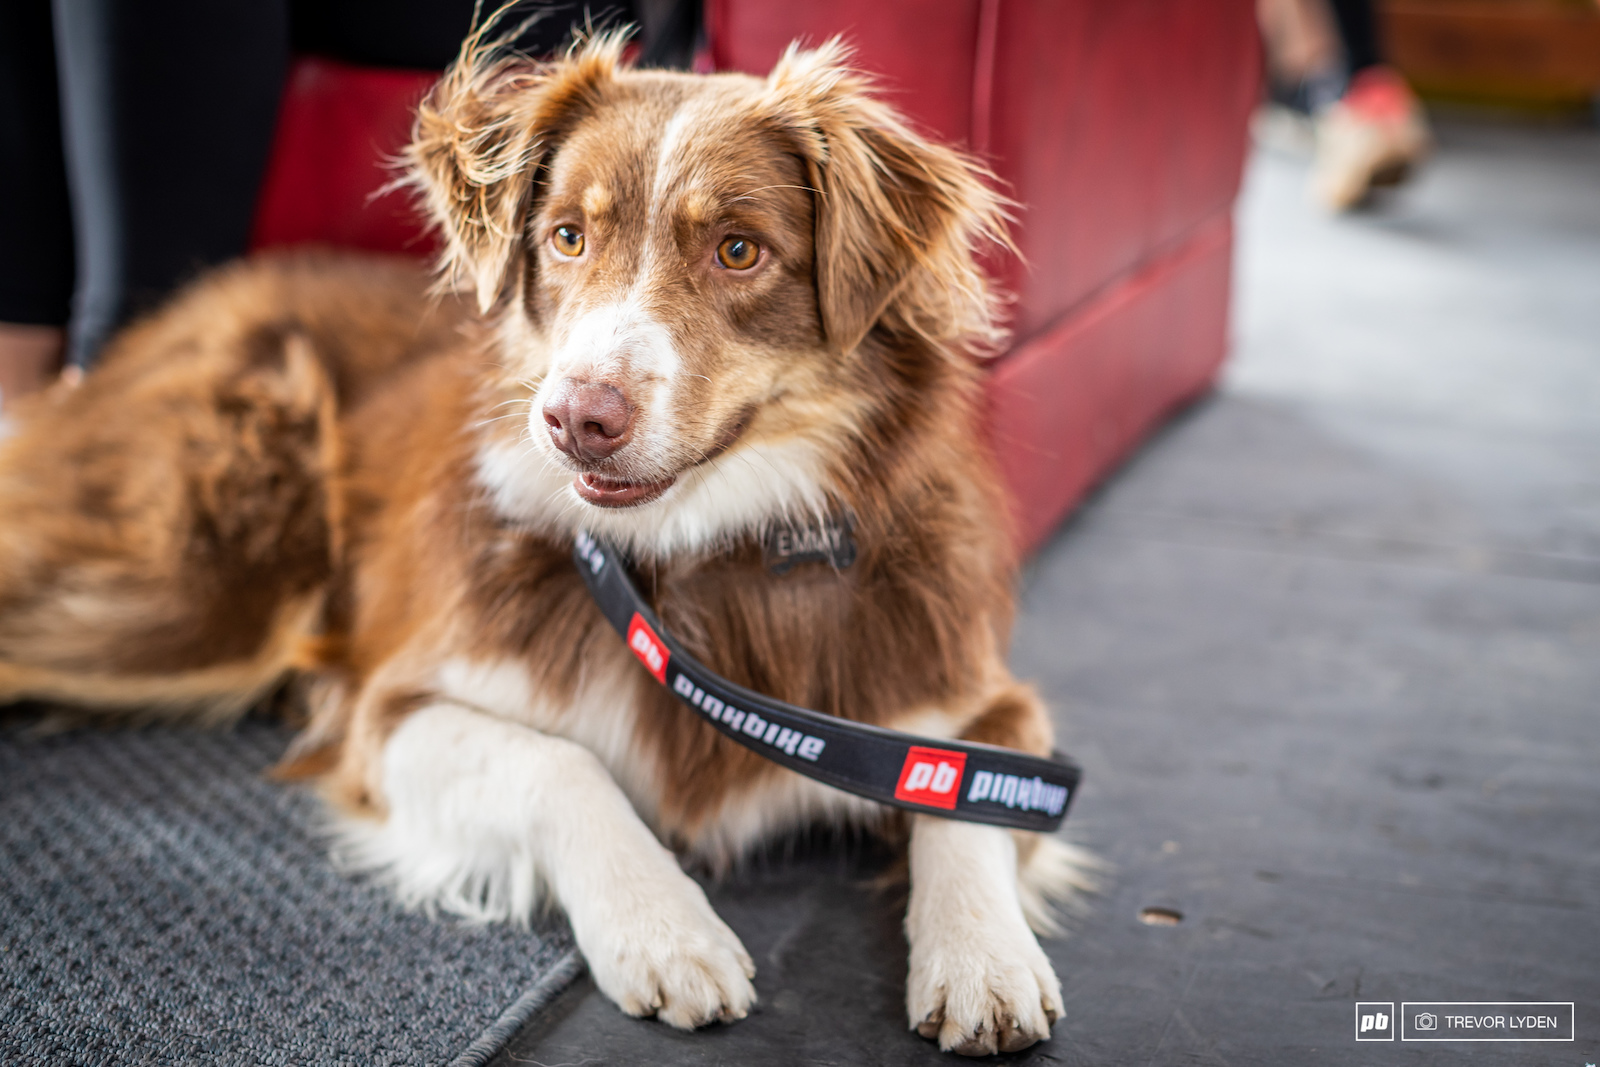 Emmy showing off her new Pinkbike branded collar and leash.